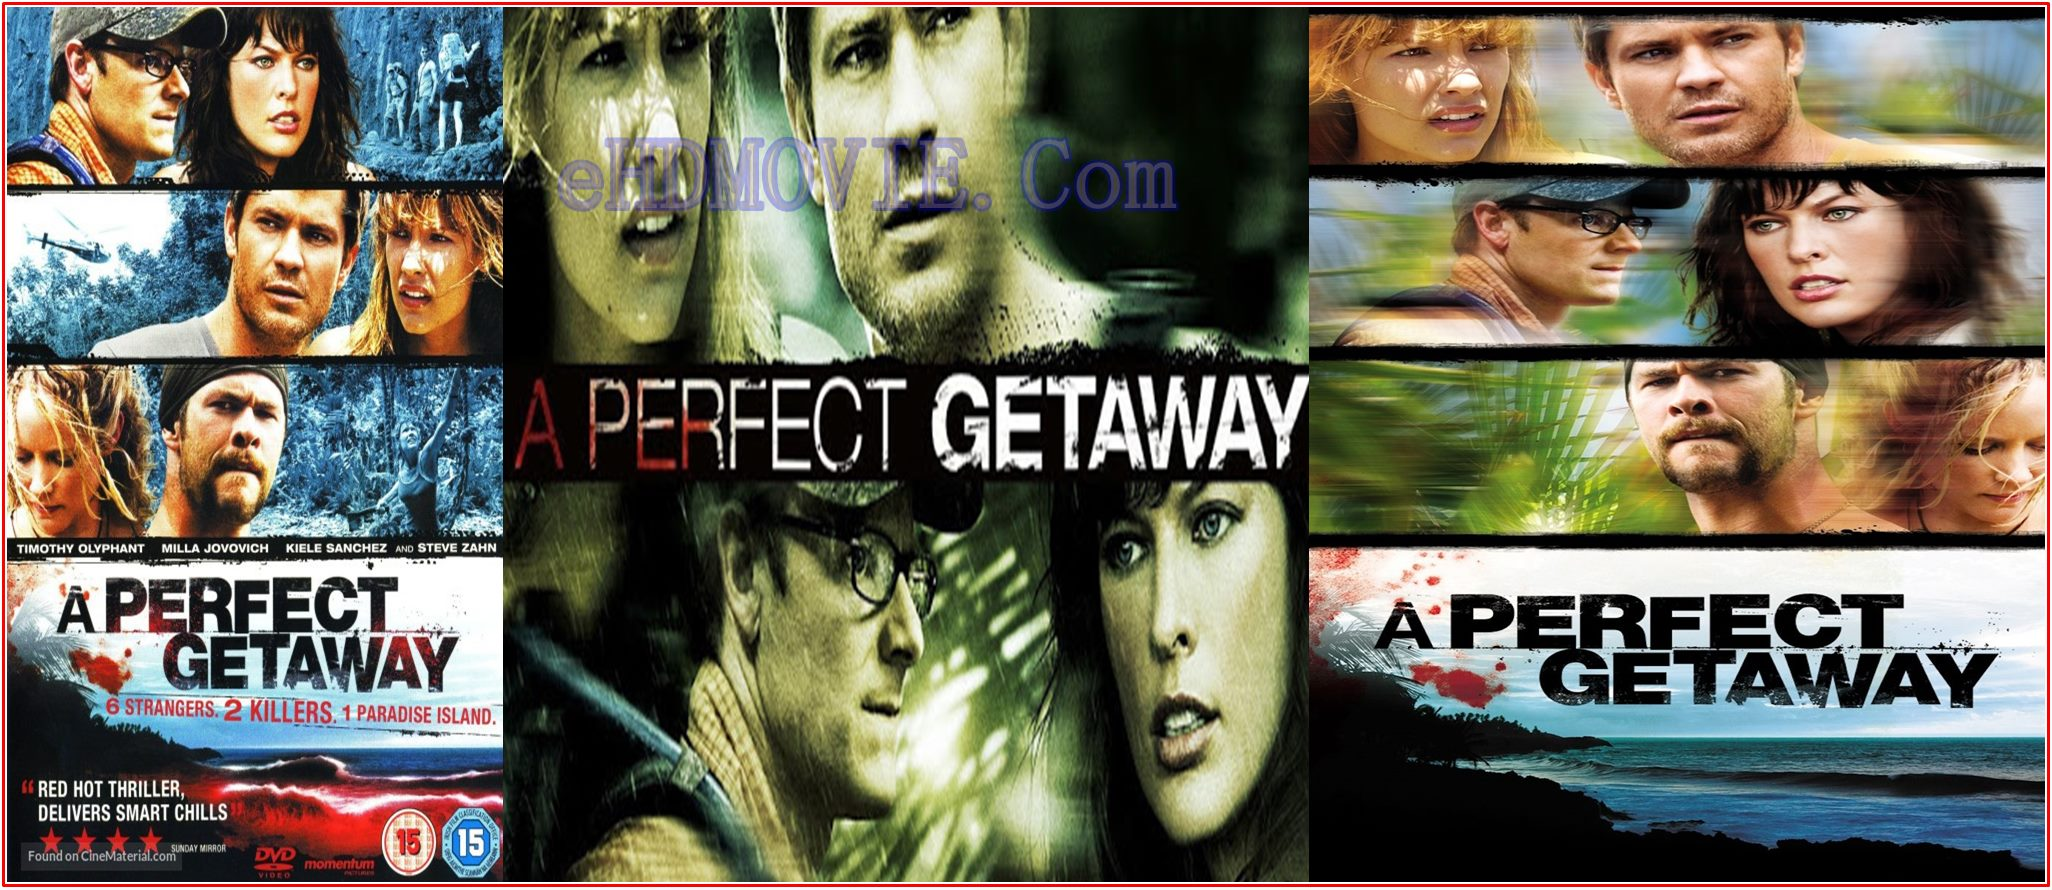 A Perfect Getaway 2009 Full Movie Dual Audio [Hindi – English] 720p – 480p ORG BRRip 300MB – 1GB ESubs Free Download